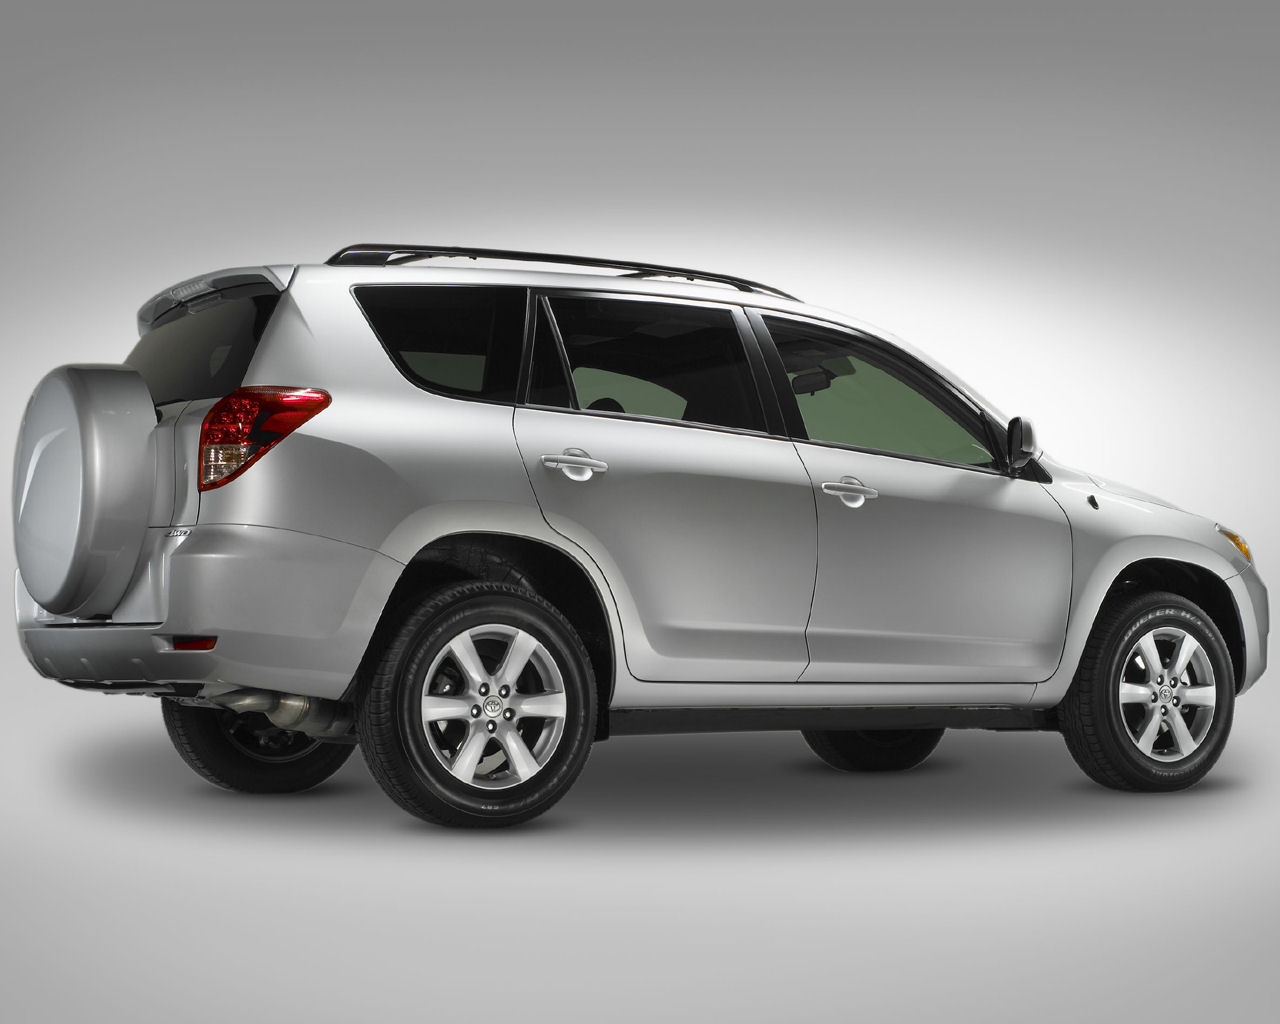 2000 Ford Edge >> Toyota RAV4 Sport, Limited V6, AWD - Free 1280x1024 Wallpaper / Desktop Background Picture